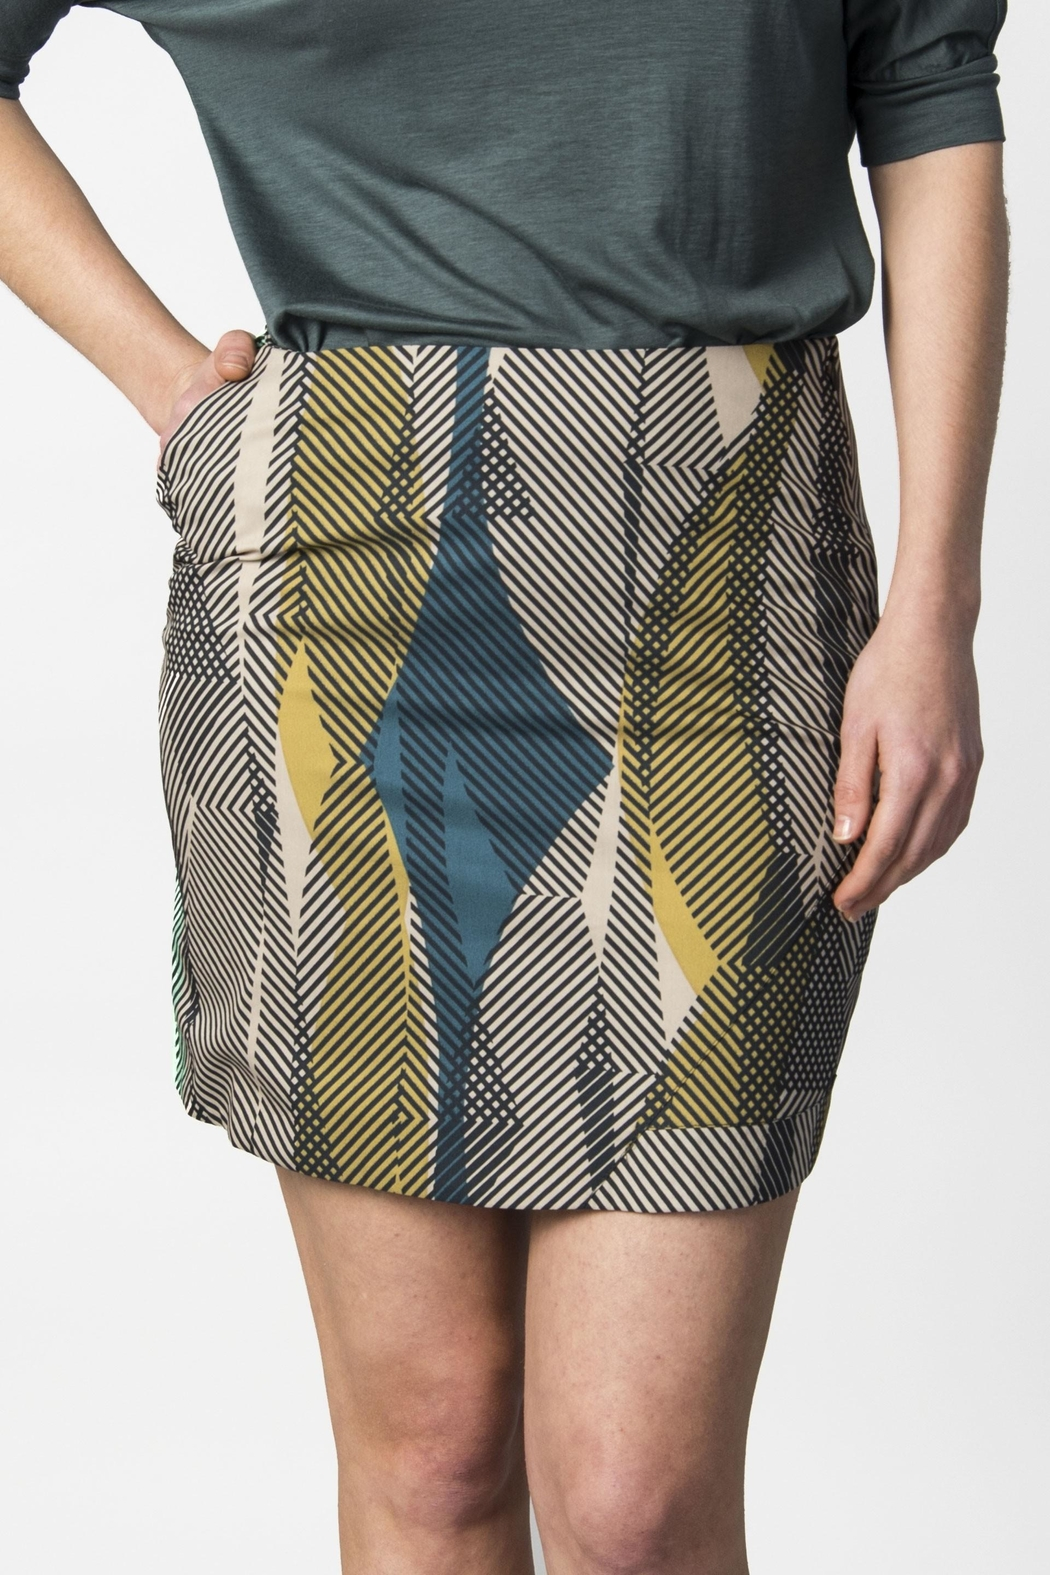 Skunkfunk A Line Patterned Skirt from Edinburgh by Just g Boutique ...